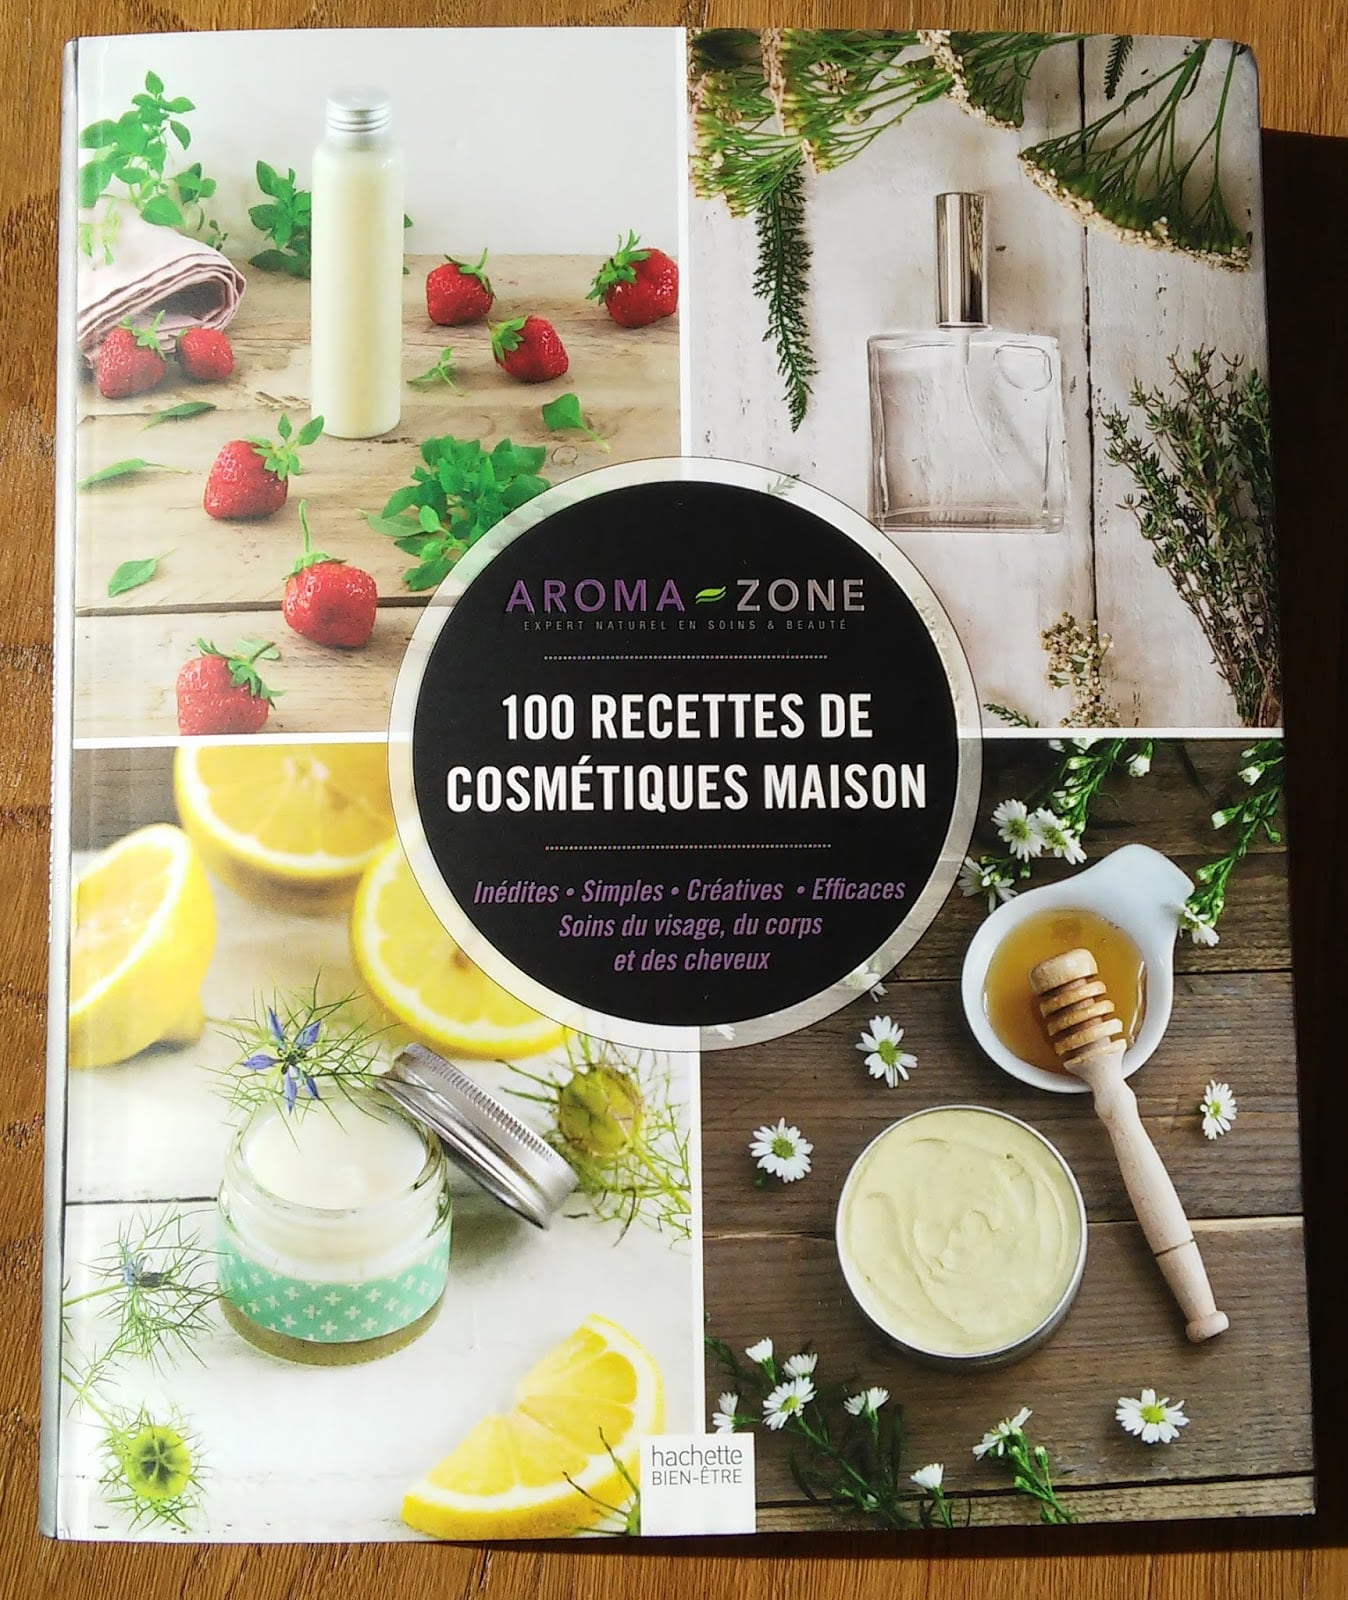 100-recettes-cosmetiques-maison-aroma-zone